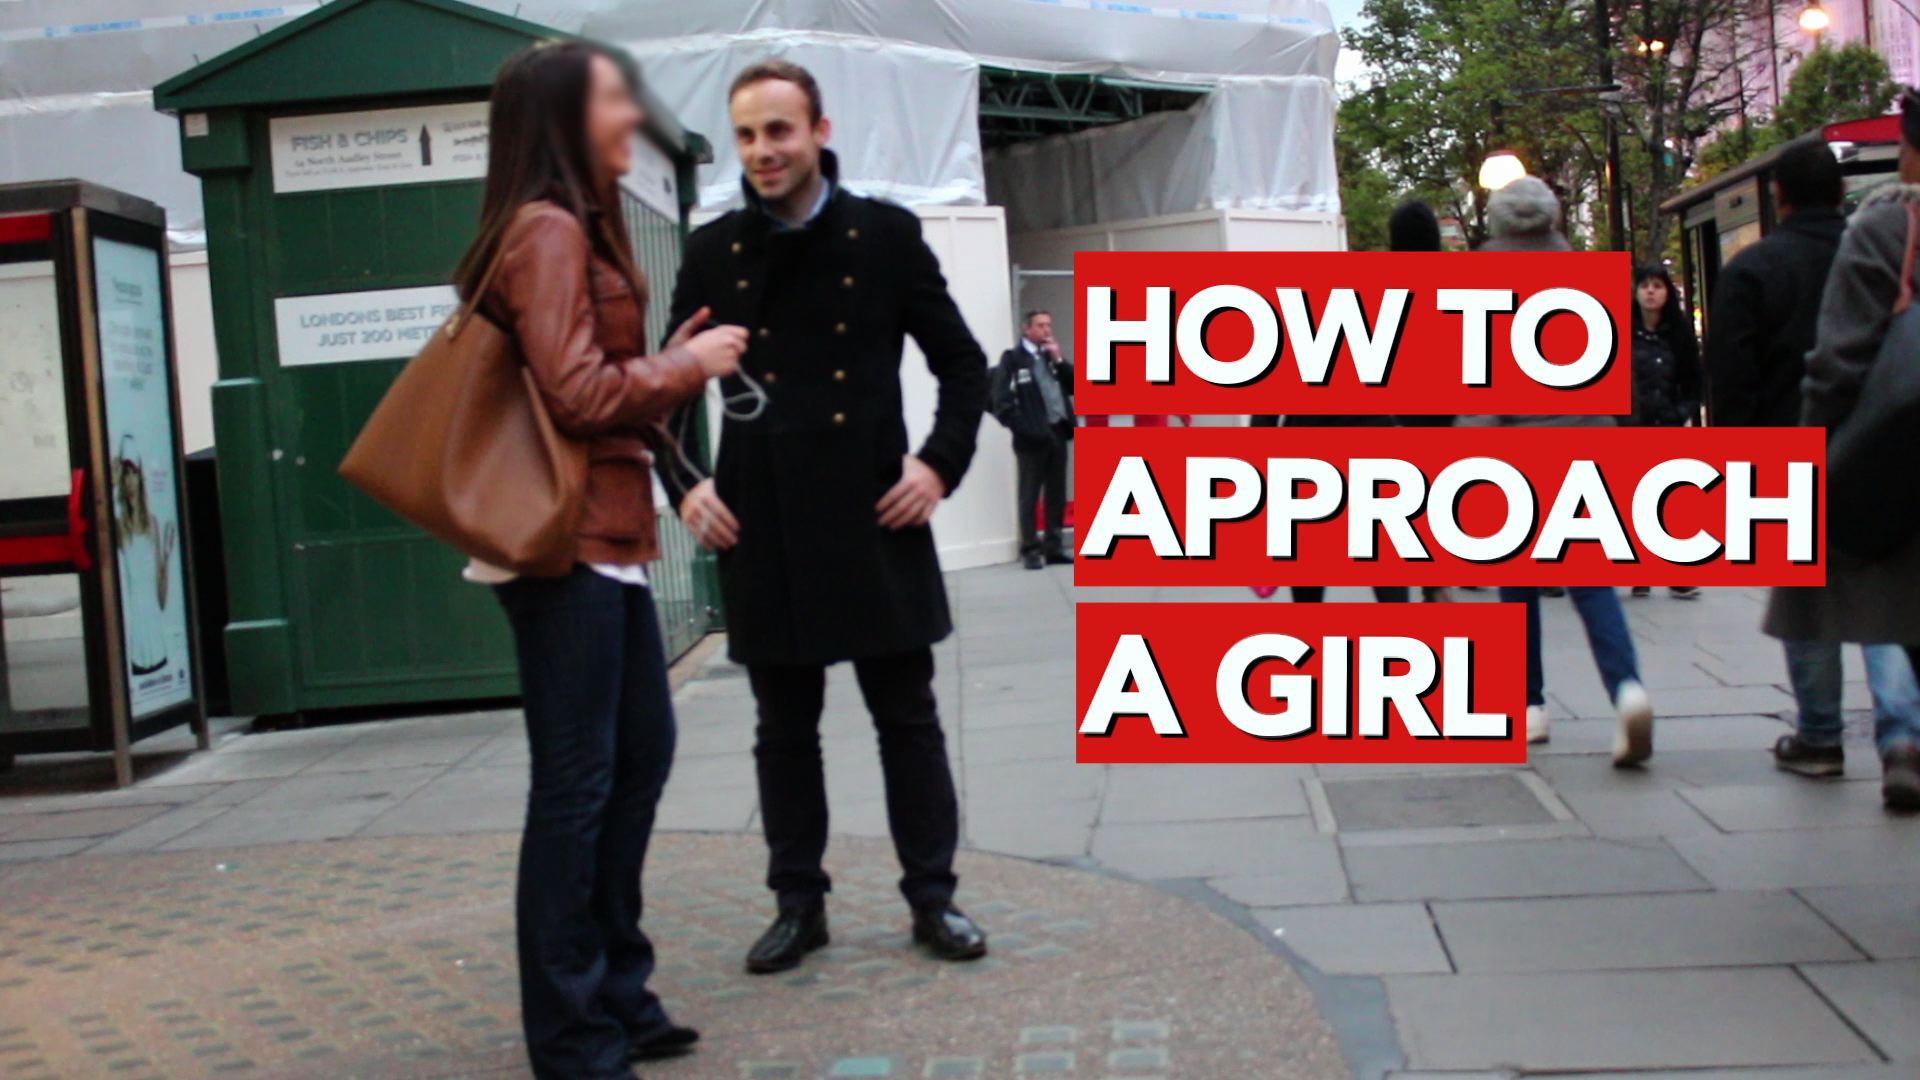 How to approach a girl in the street